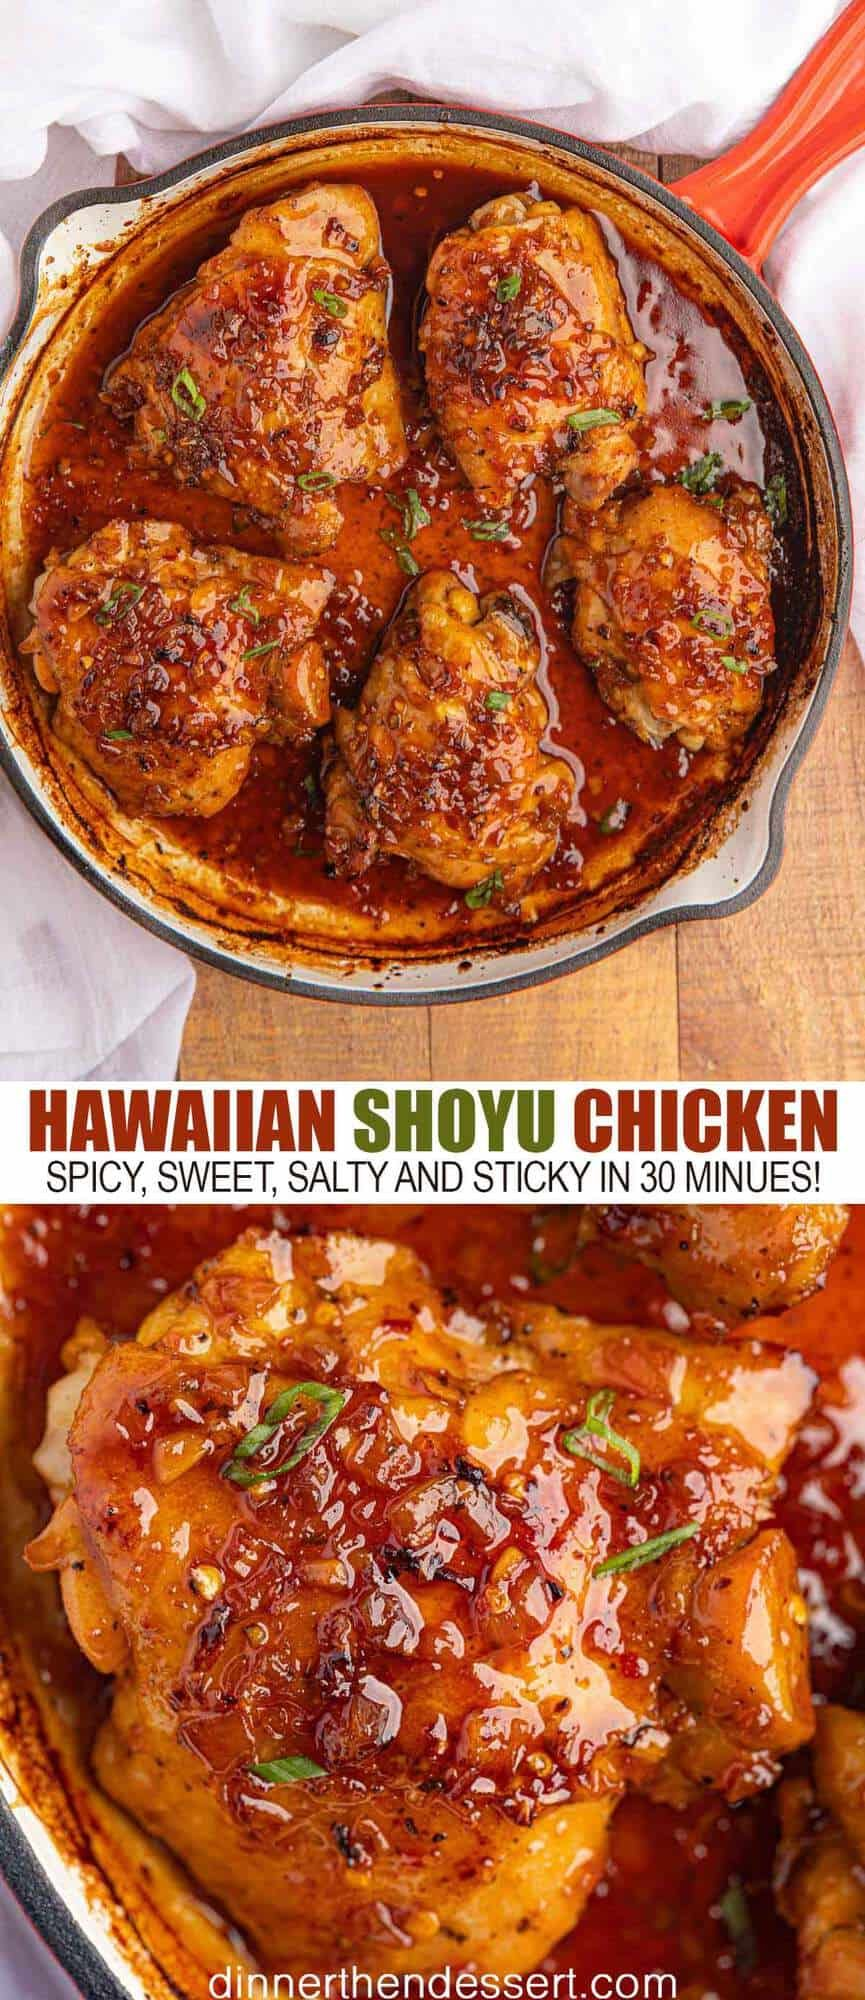 Hawaiian Shoyu Chicken (Sticky Sweet in 30 mins!) - Dinner, then Dessert #hawaiianfoodrecipes